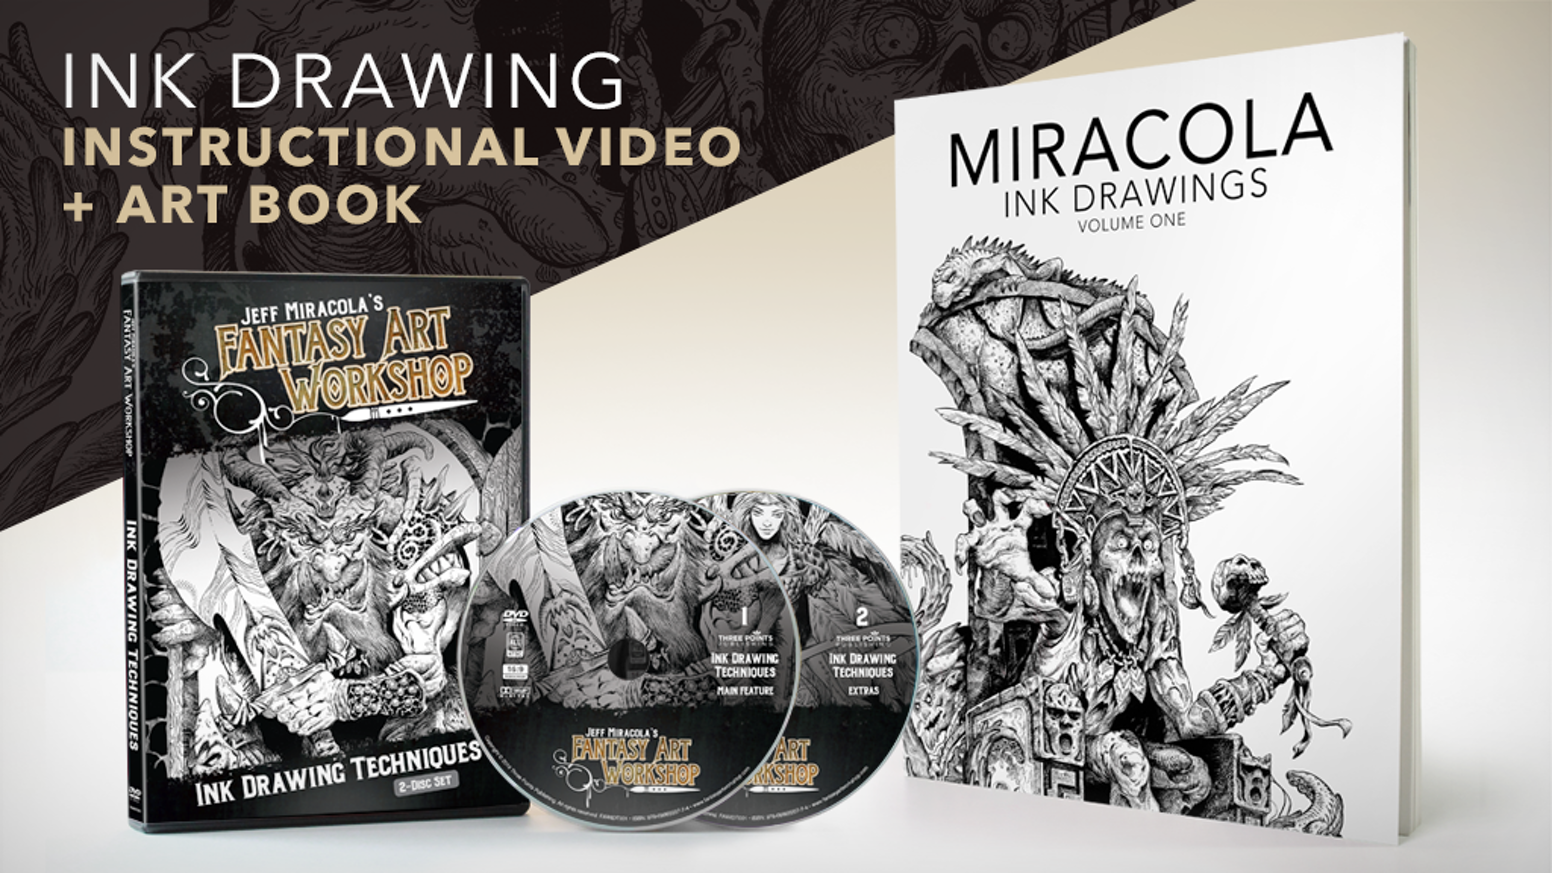 An inking techniques video in DVD/Digital Download format and a book of ink drawings by world-renowned fantasy artist Jeff Miracola.